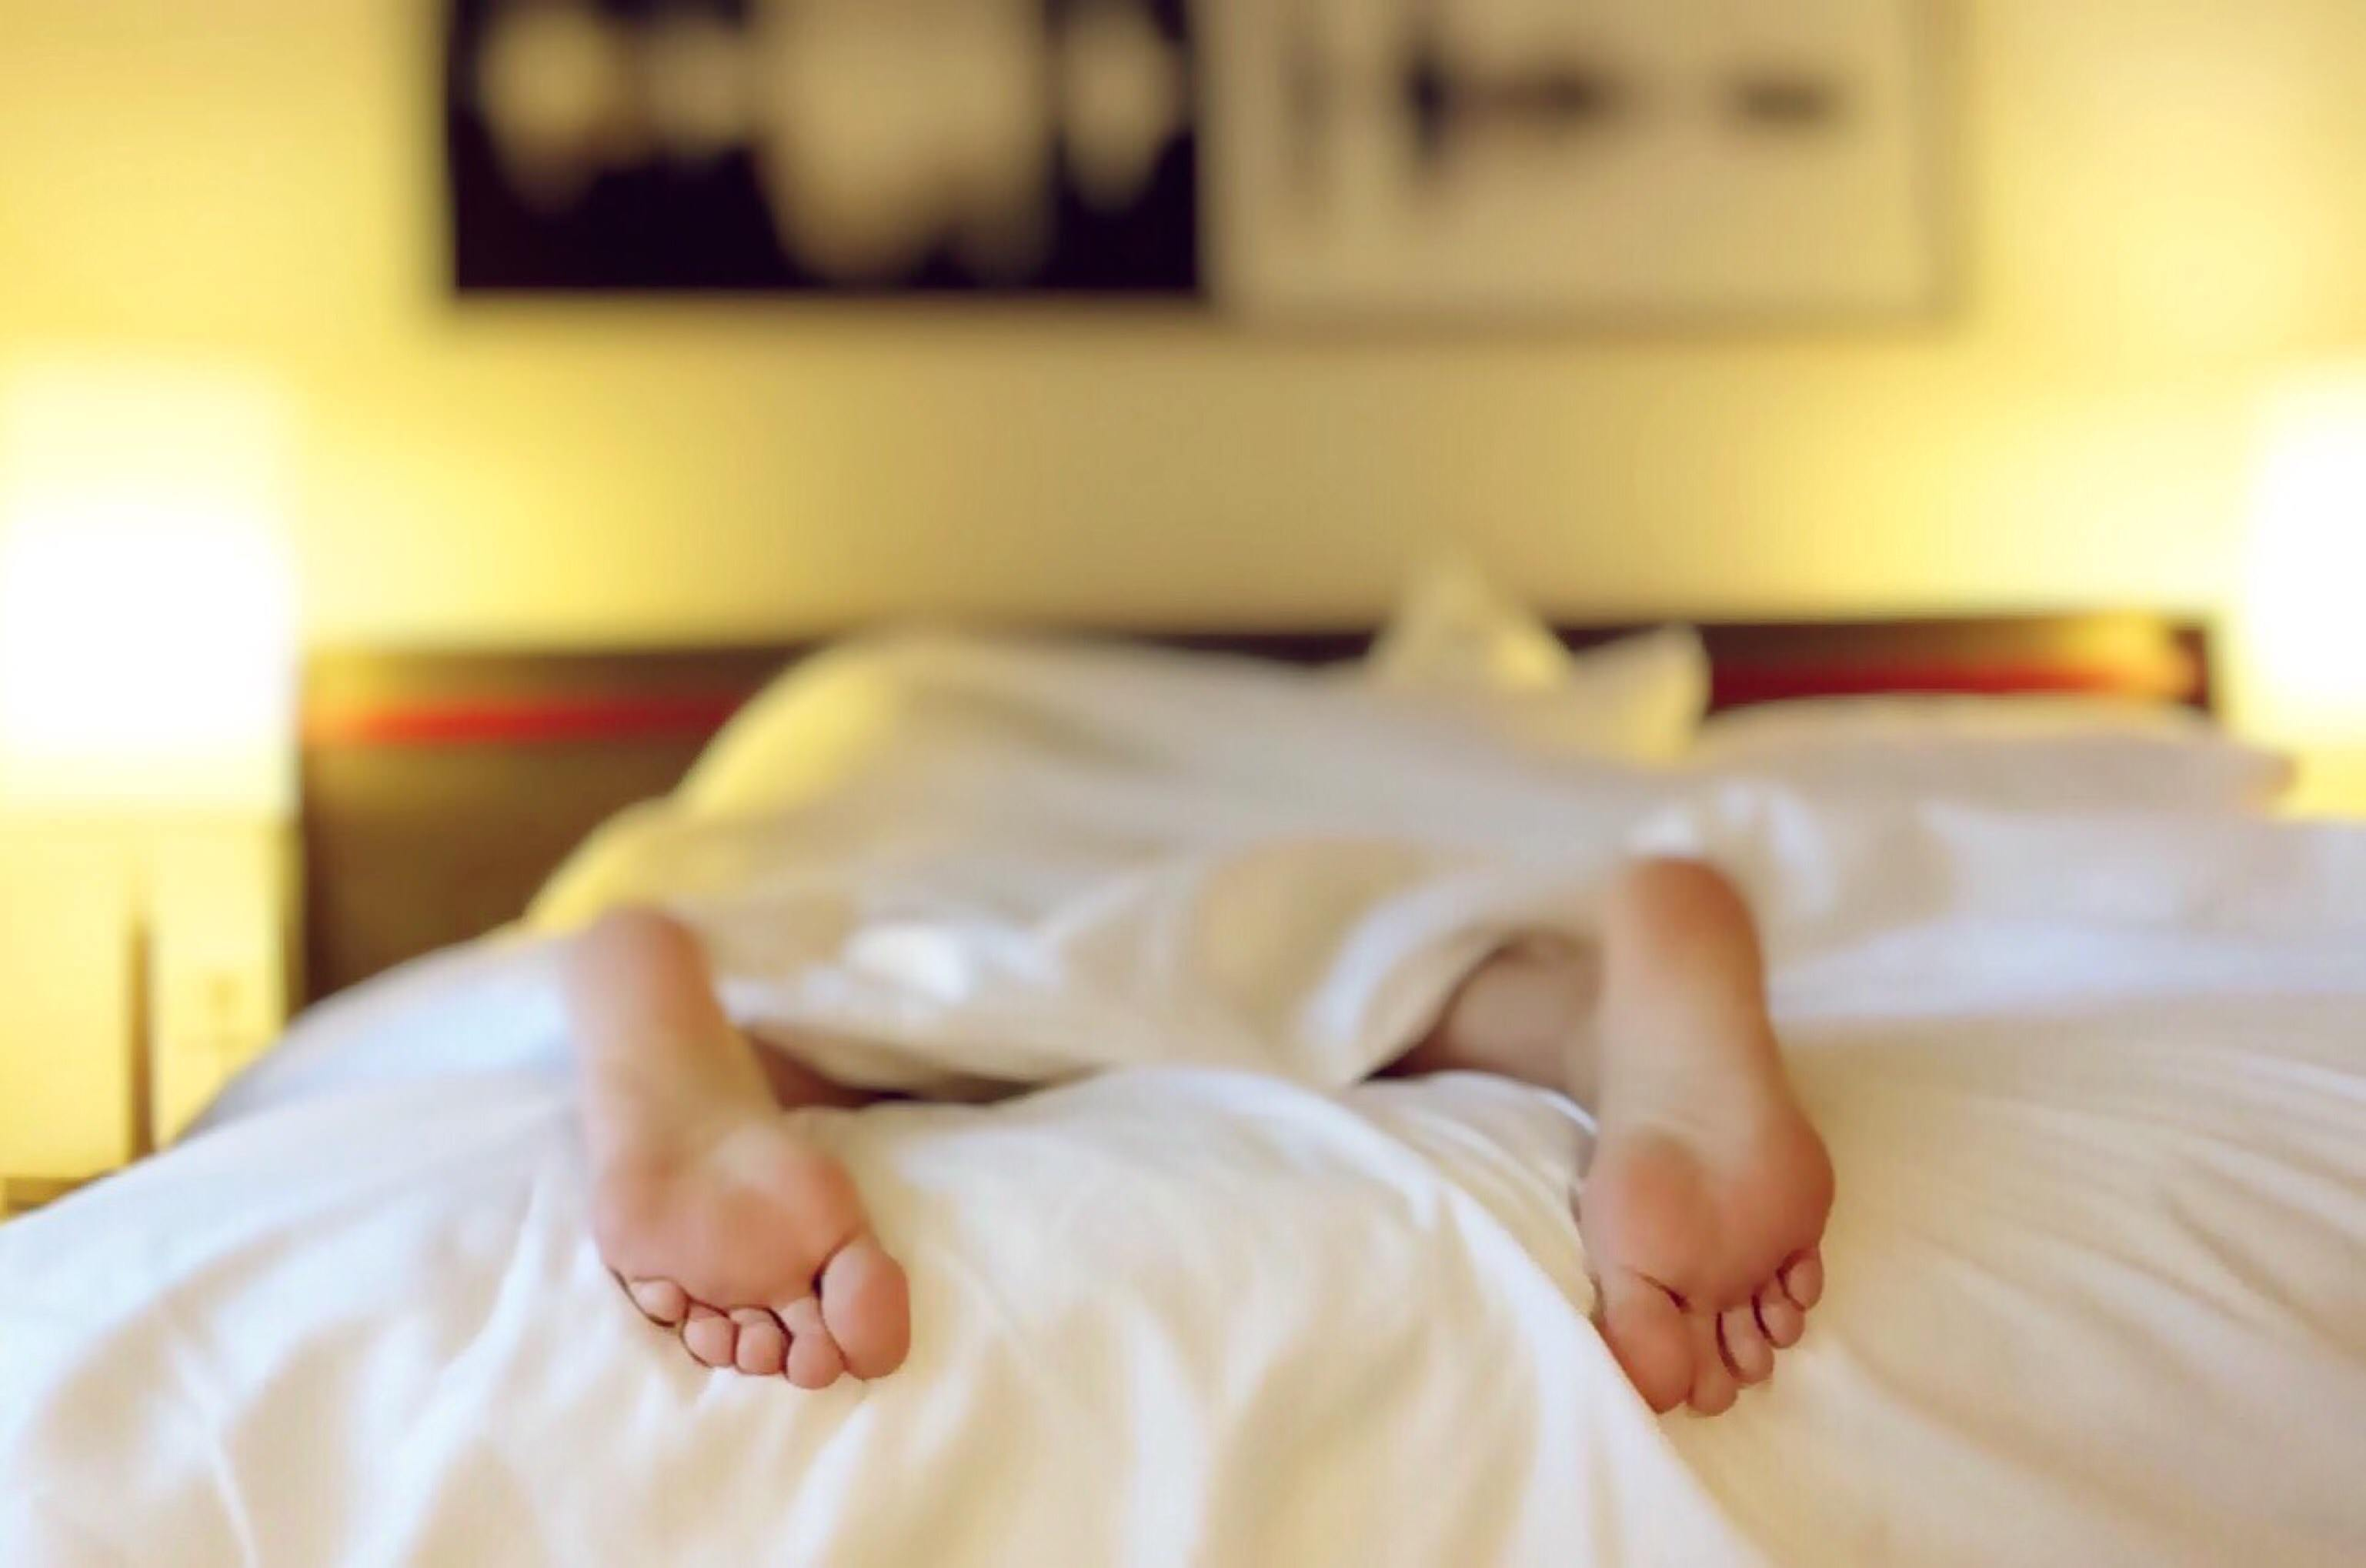 healthy feet at hotel bed sleeping